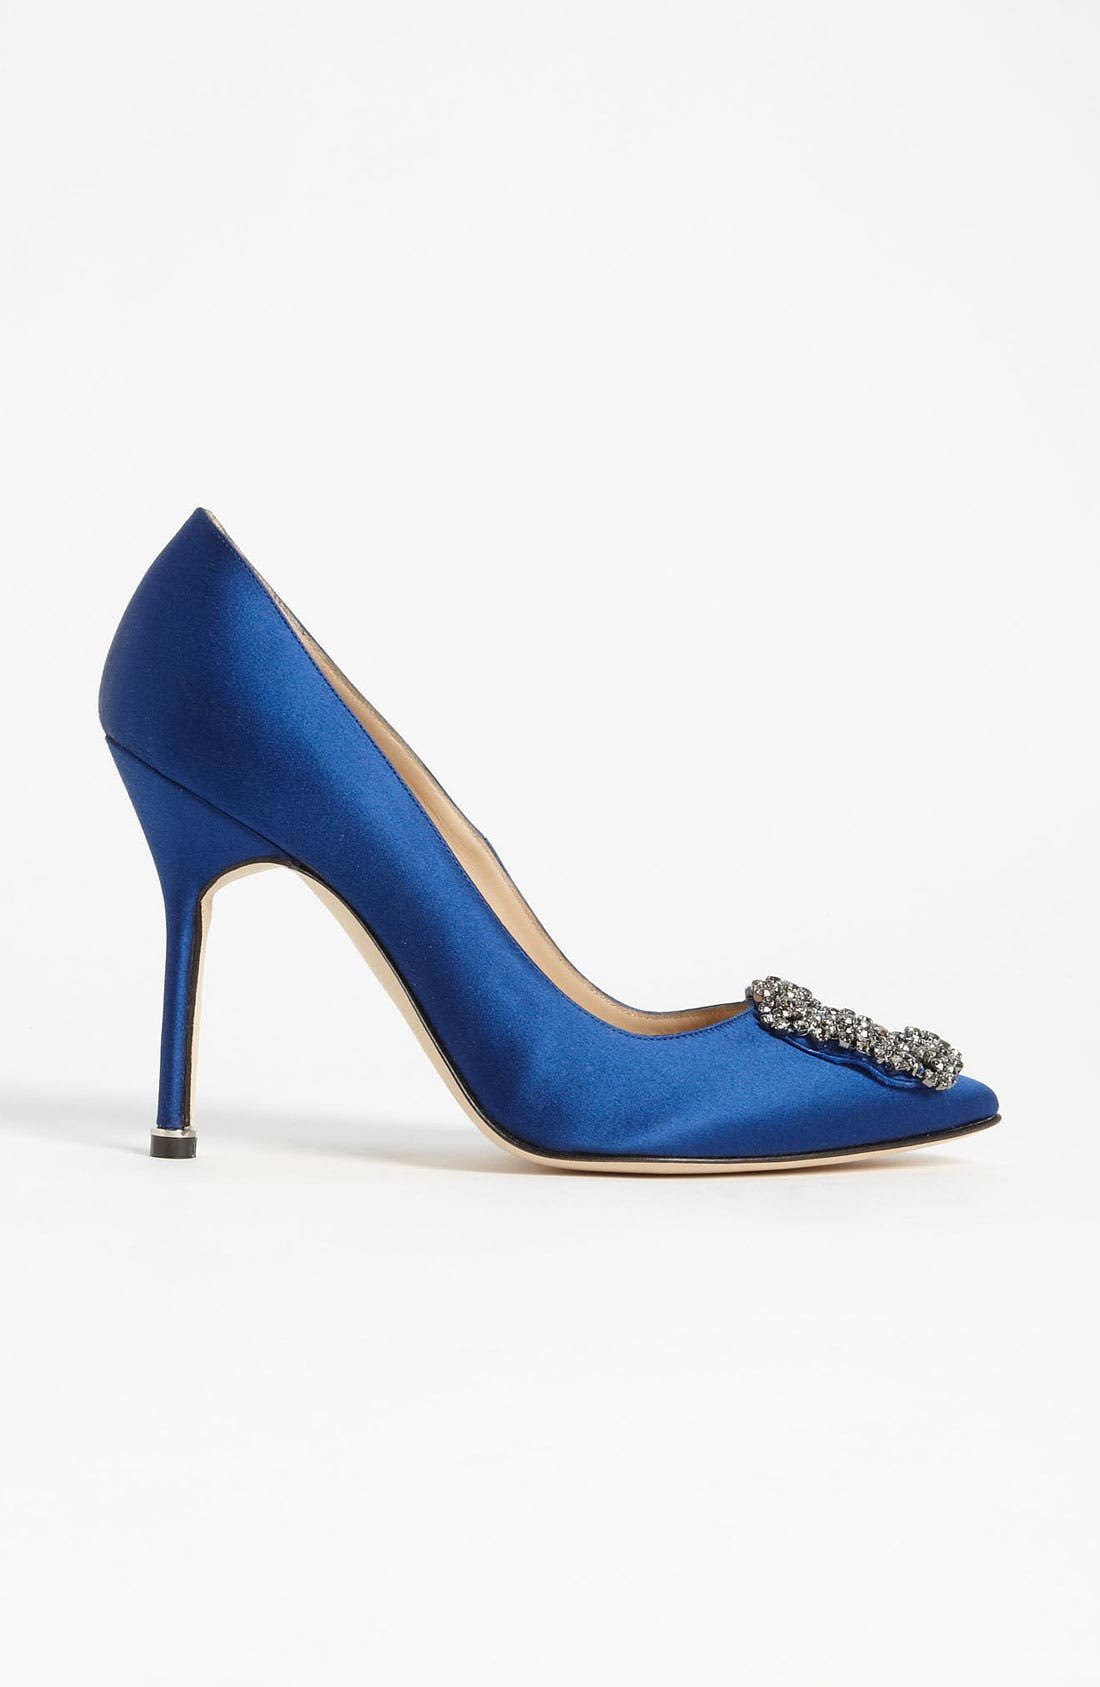 'Hangisi' Jewel Pump,                             Alternate thumbnail 4, color,                             BLUE SATIN